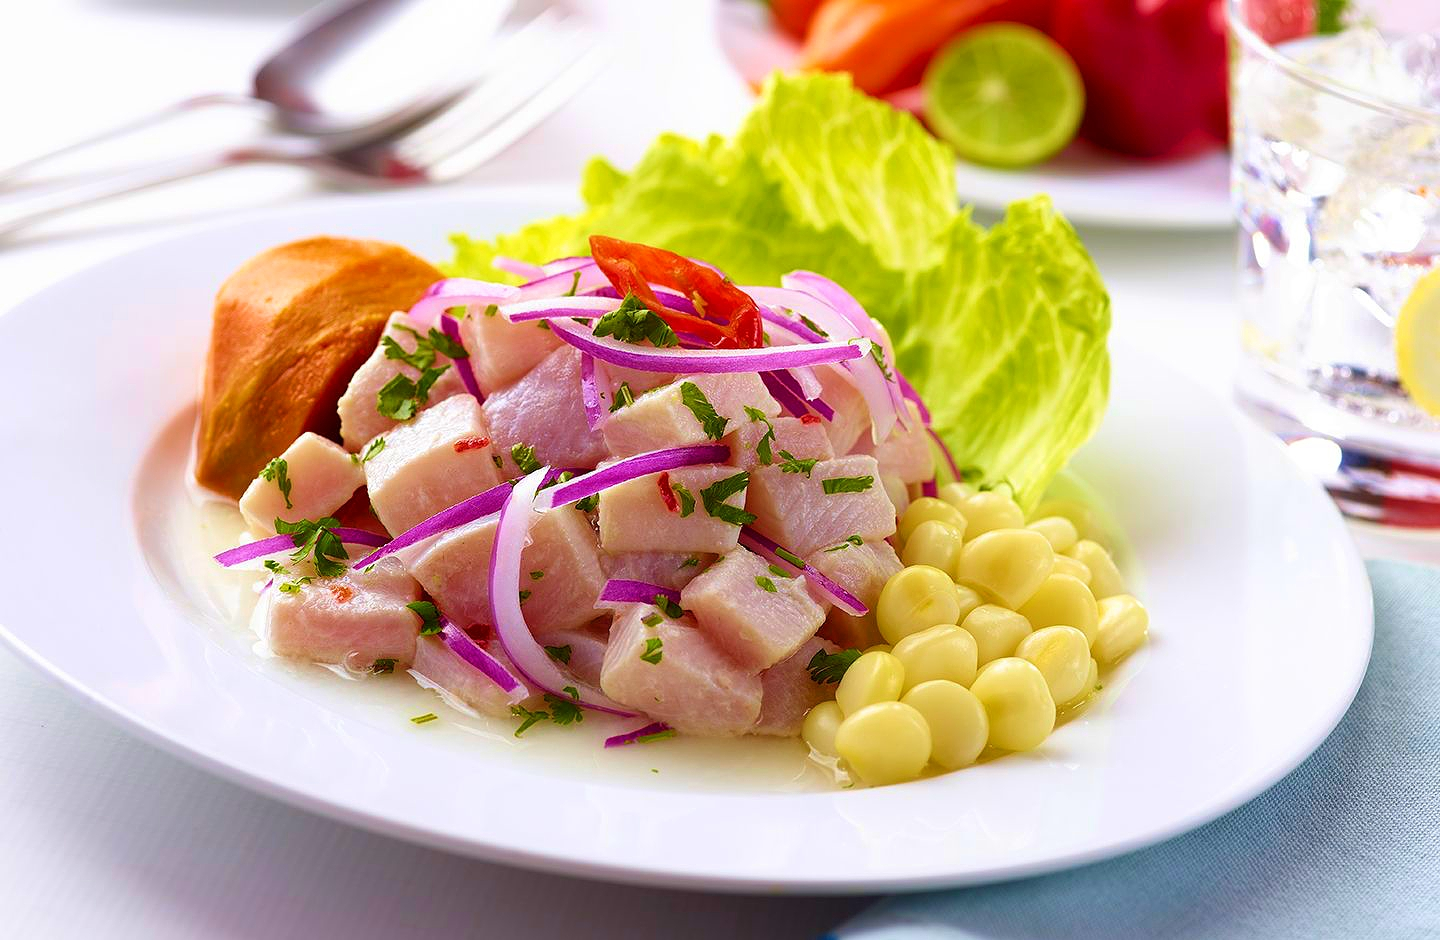 The Astonishing Varieties of Peruvian Ceviche